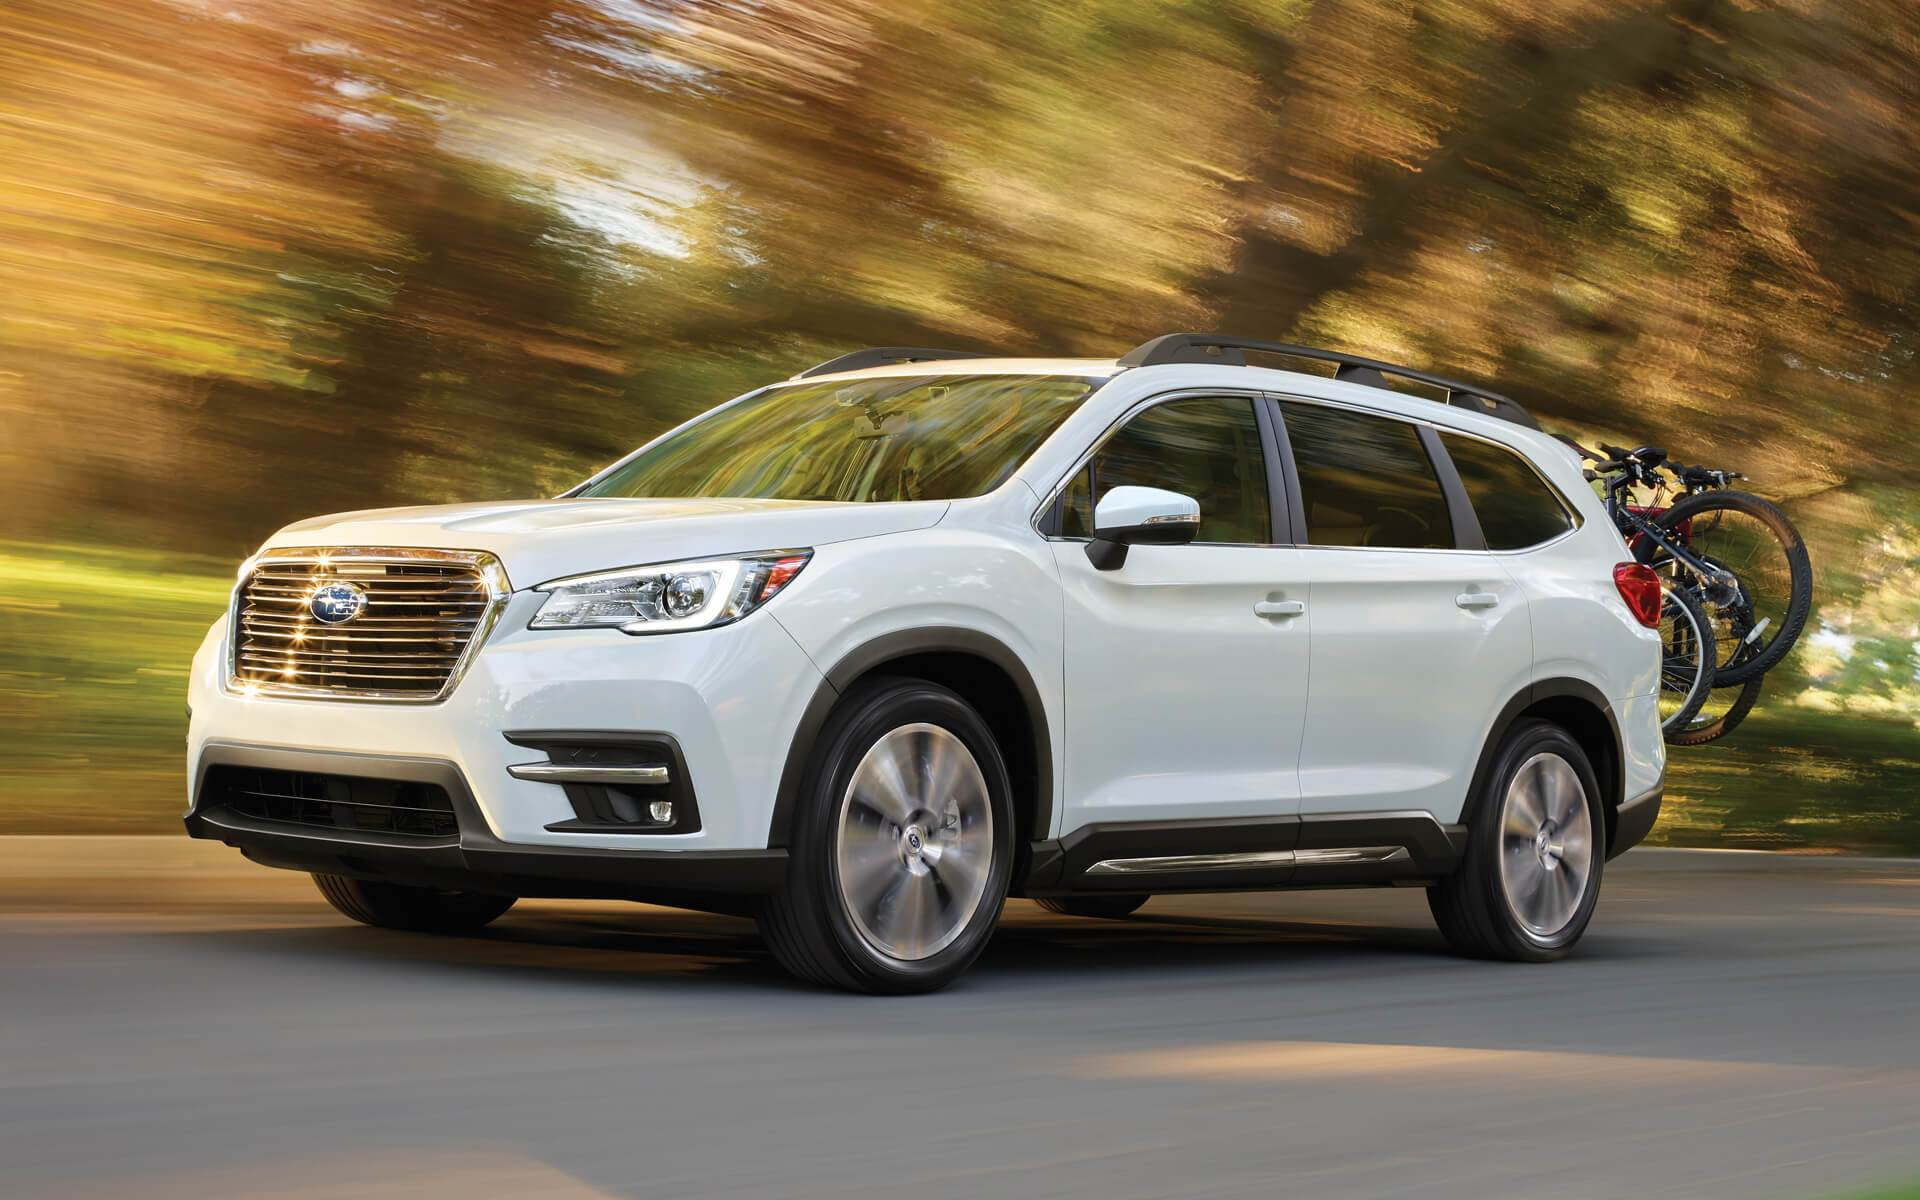 2020 Subaru Ascent Trims and Prices